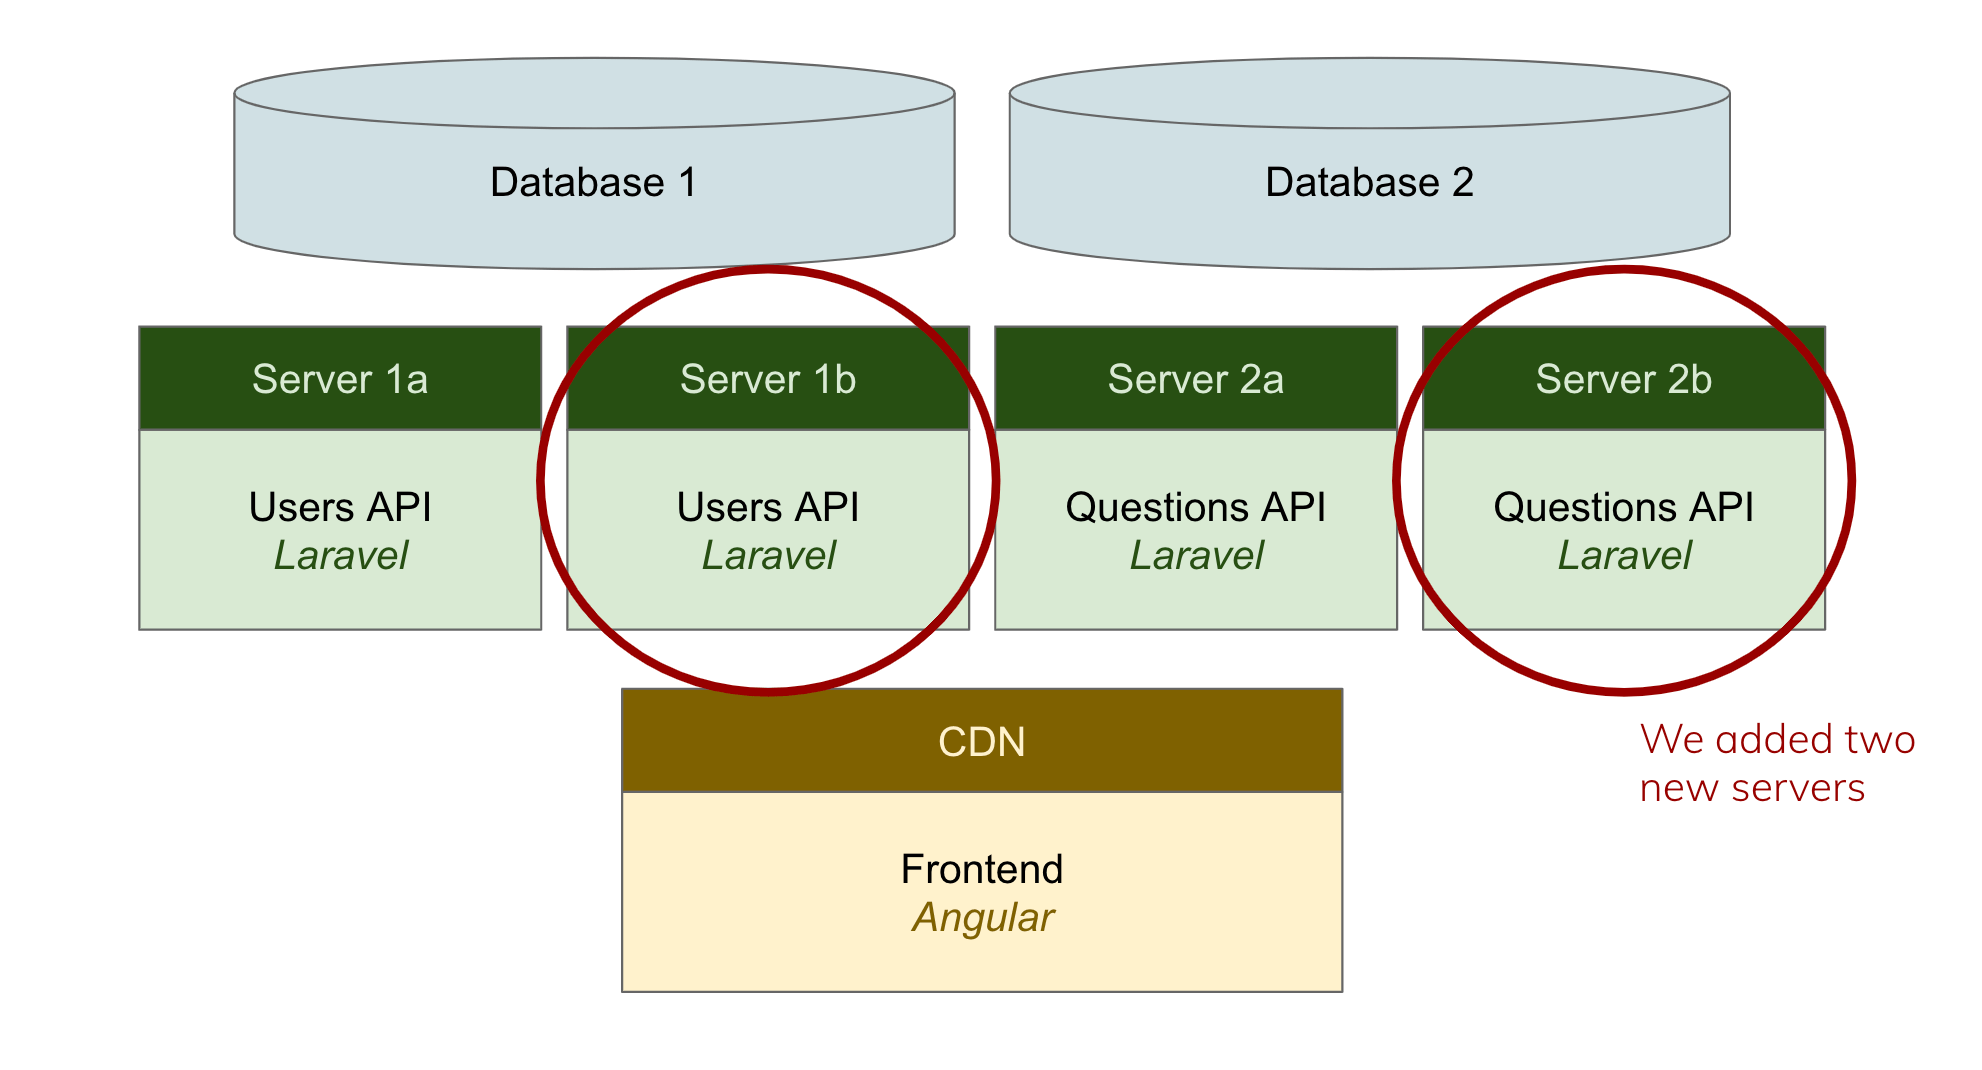 """Under Database 1, there are two servers, Server 1a and Server 1b; both say, """"Users API: Laravel"""". Under Database 2, there are again two servers, Server 2a and Server 2b; both say, """"Questions API: Laravel"""". Below the servers, there is a CDN box that says """"Frontend: Angular"""". Servers 1b and 2b are circled with a note explaining, """"We added two new servers."""""""